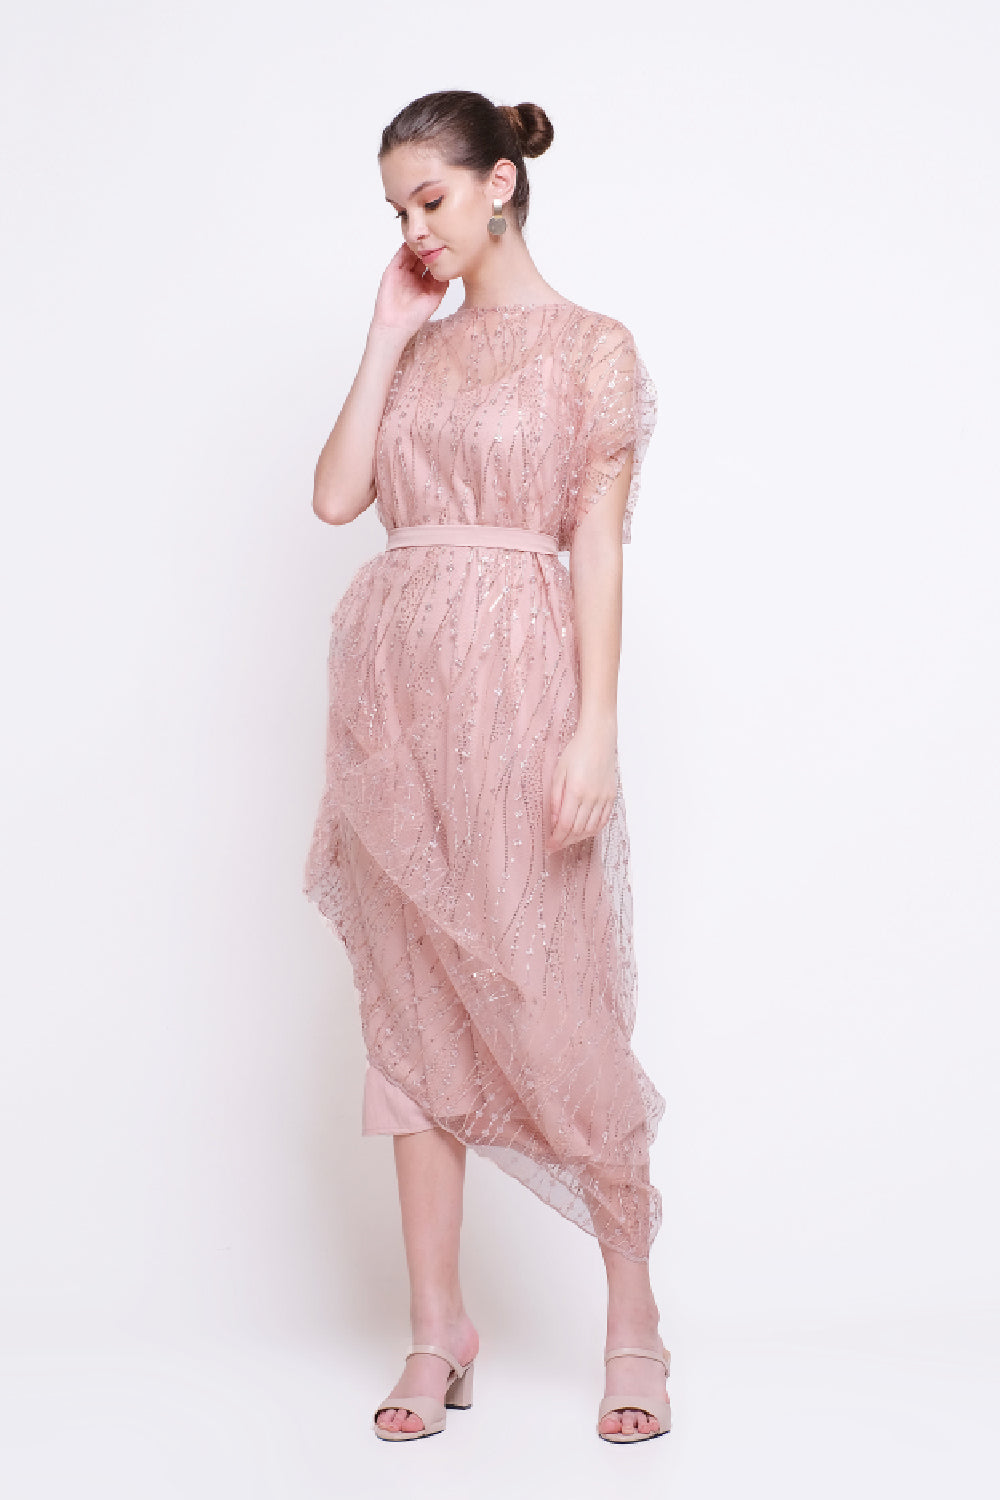 Shaqila Dress in Pink